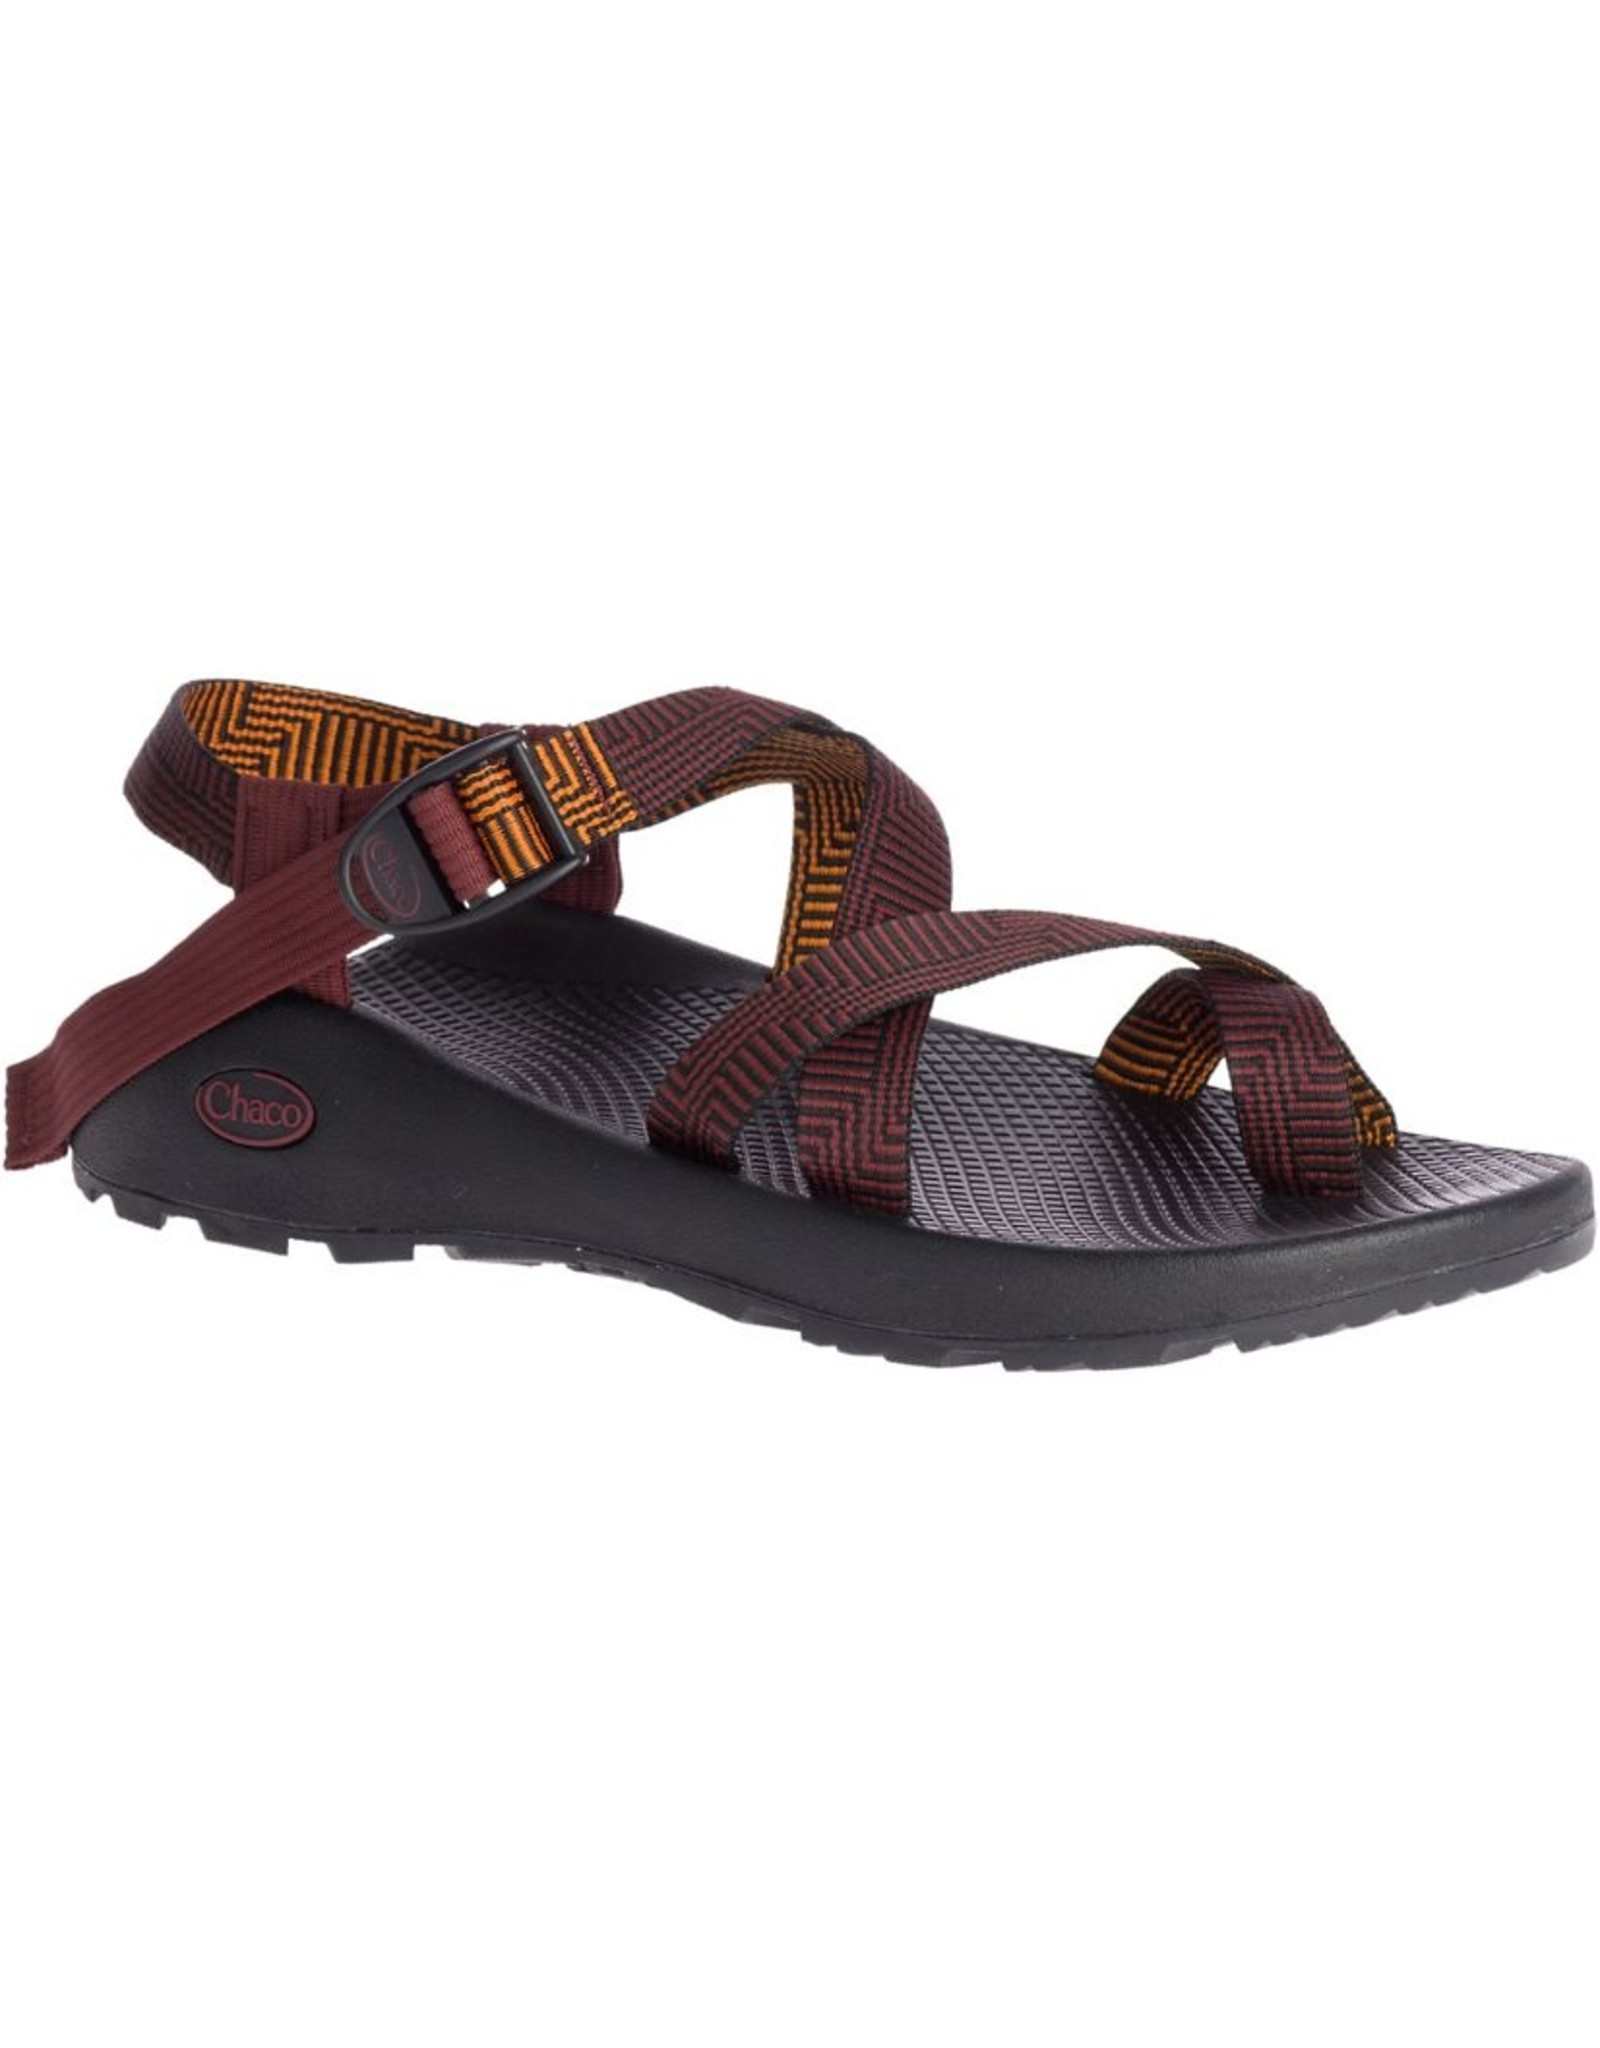 CHACO MEN'S Z/2 CLASSIC-FORE PORT